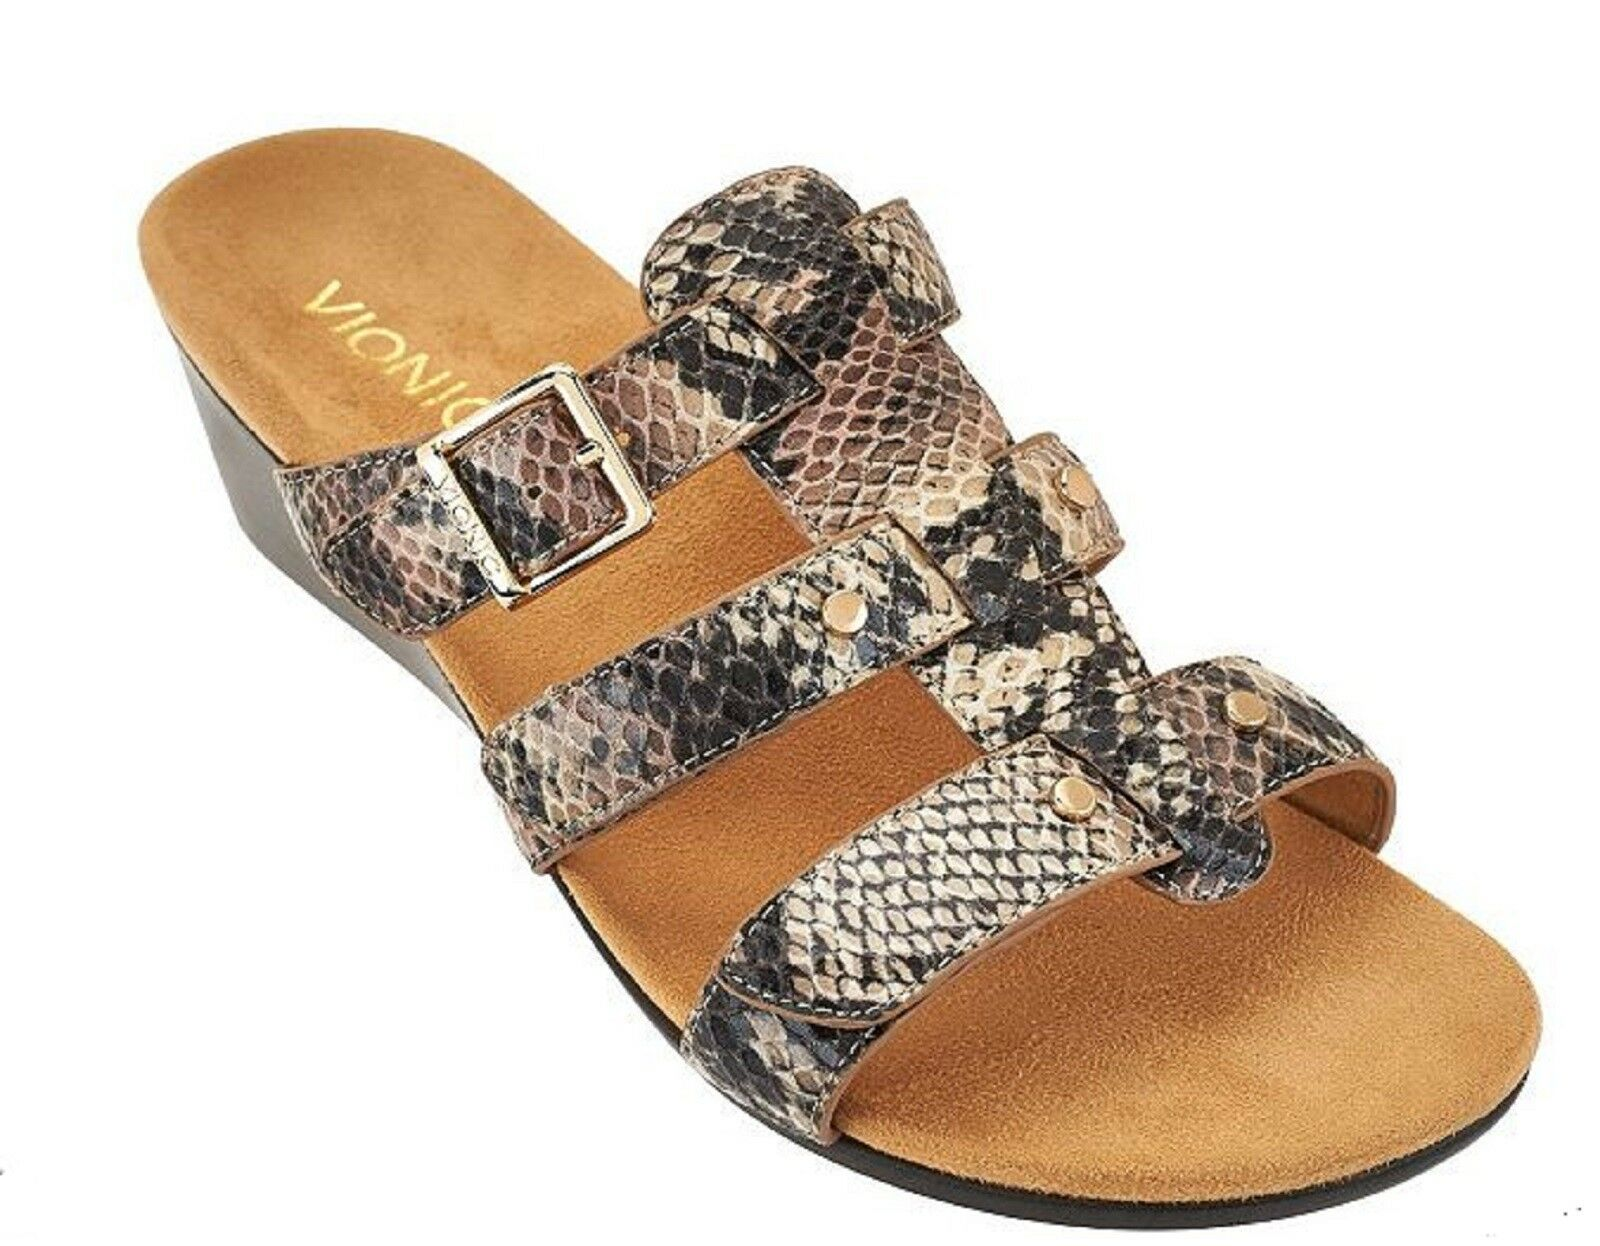 Vionic Orthaheel PARK RADIA Adjustable Strap Wedge Slides Slides Wedge NATURAL SNAKE 8 W NIB 0ec067